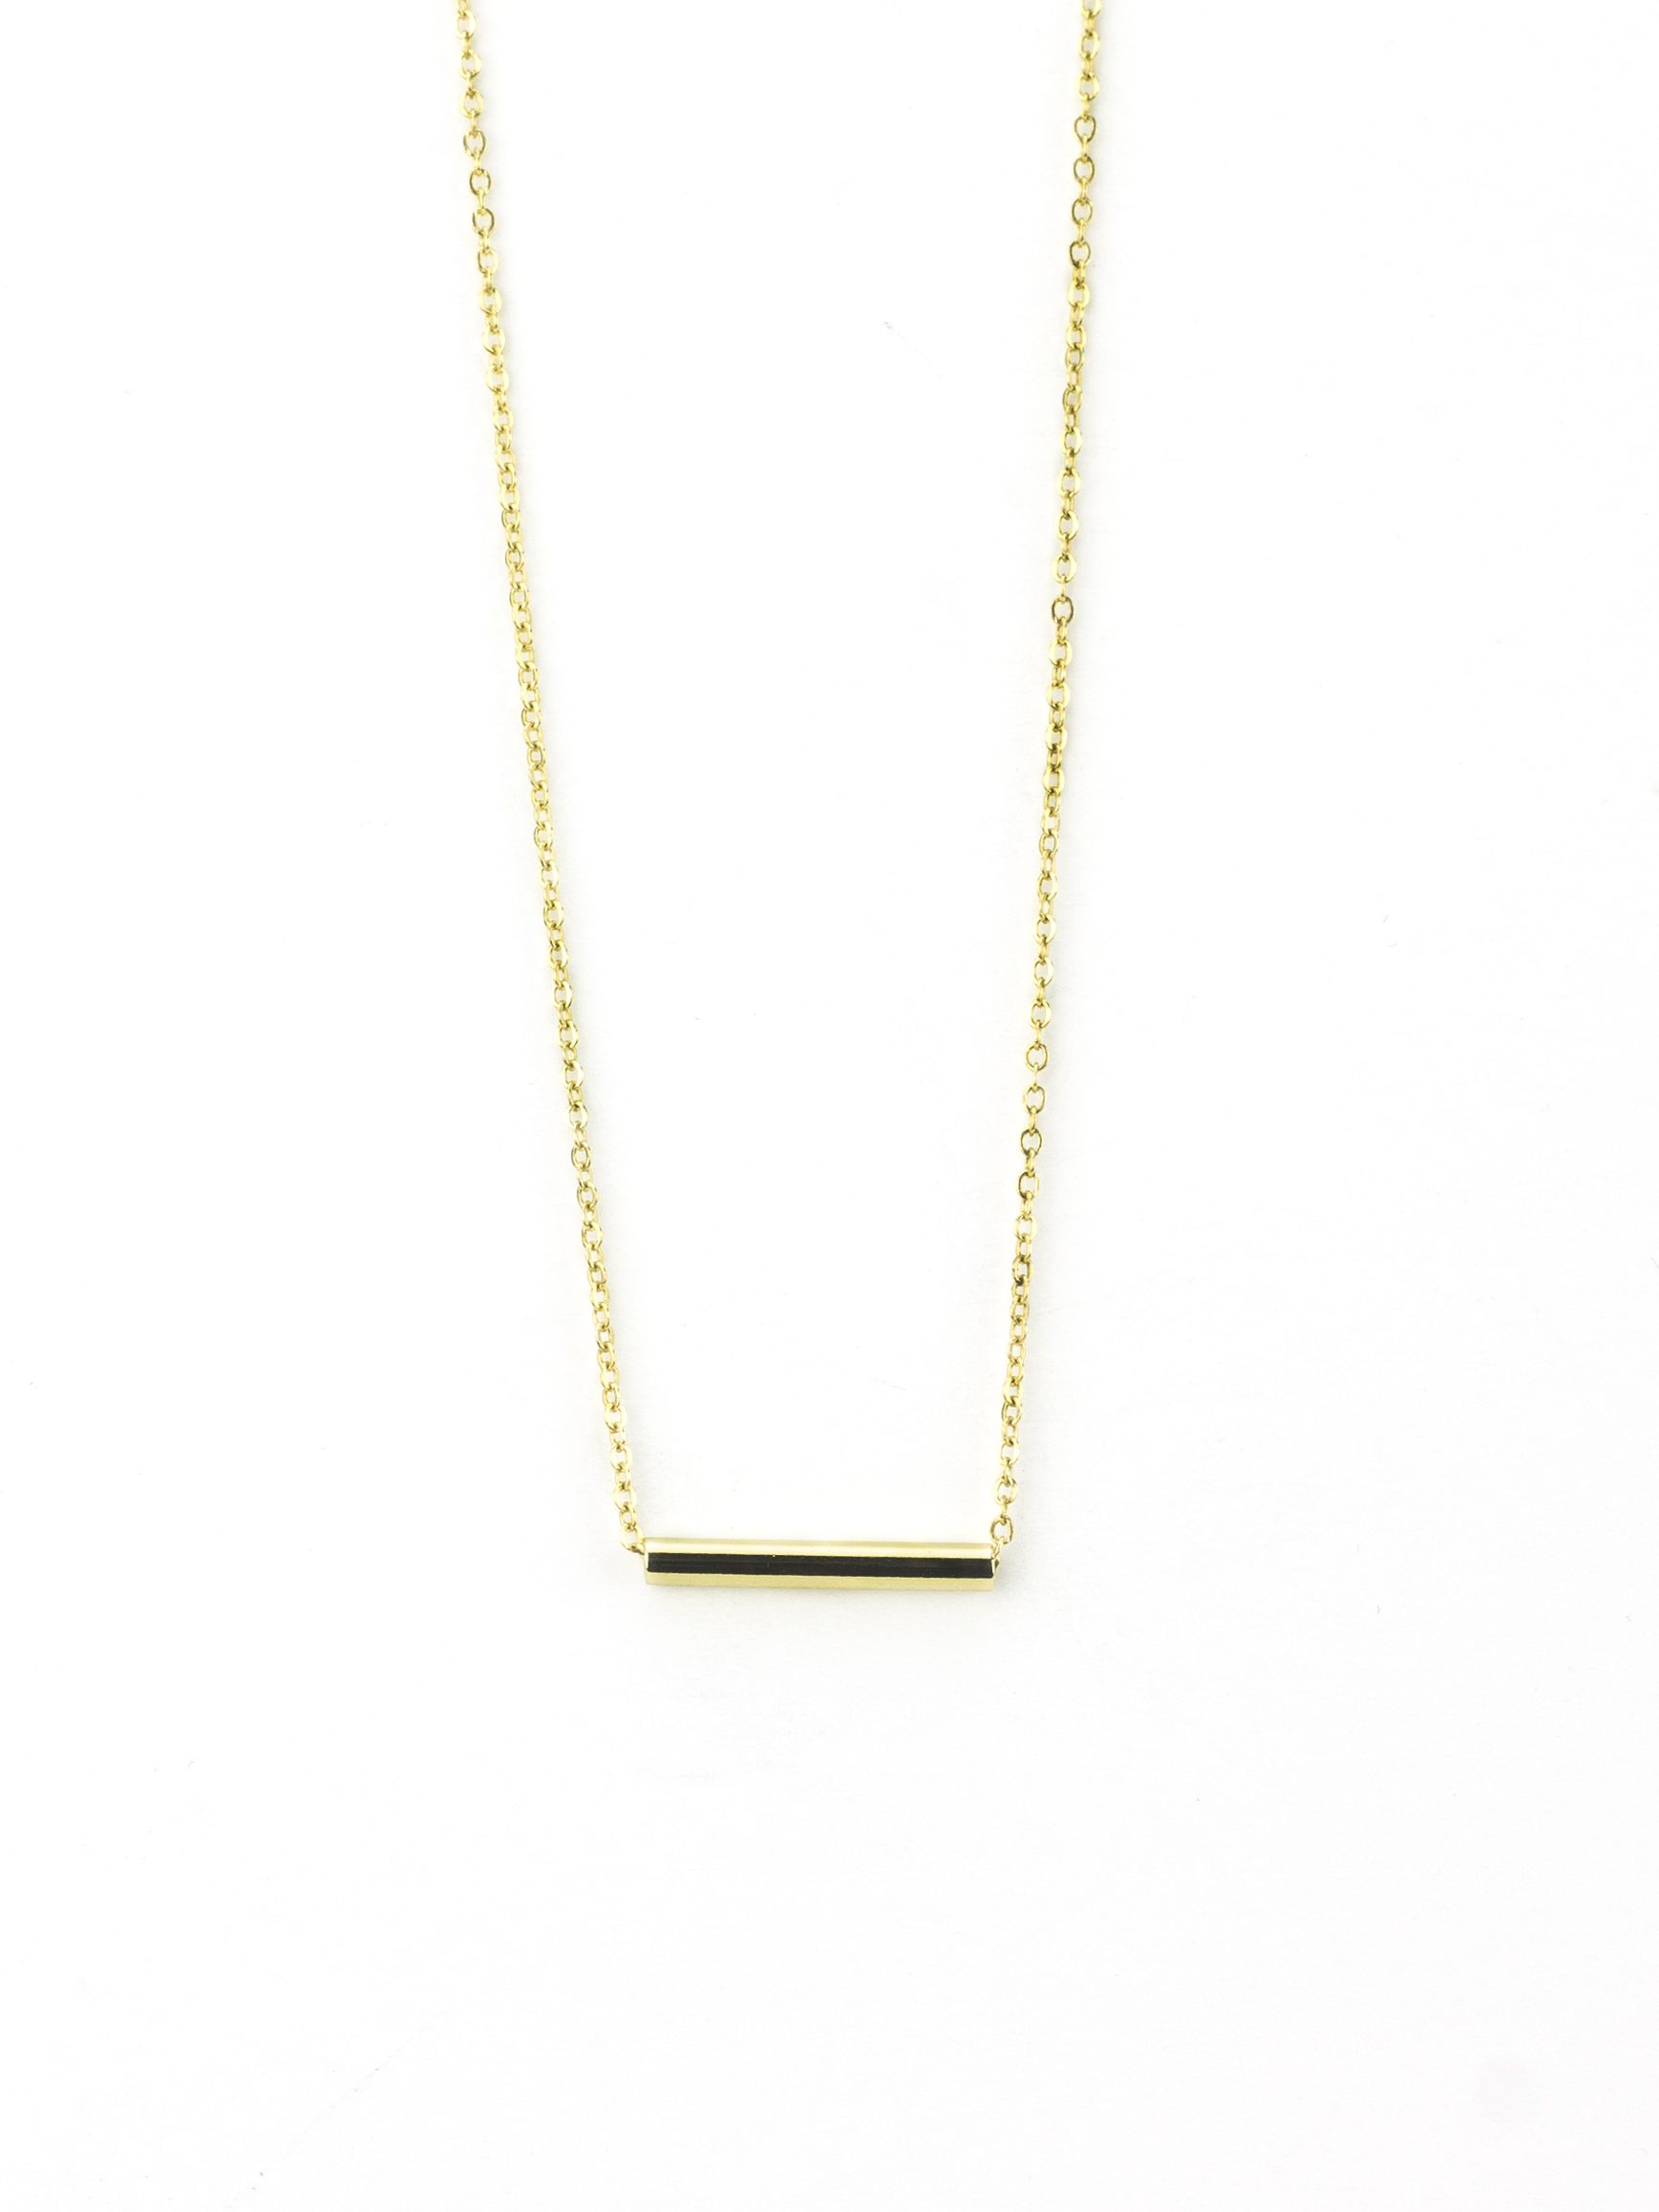 necklace mini diamond collections curated los bar cut products sliced angeles gold necklaces rose